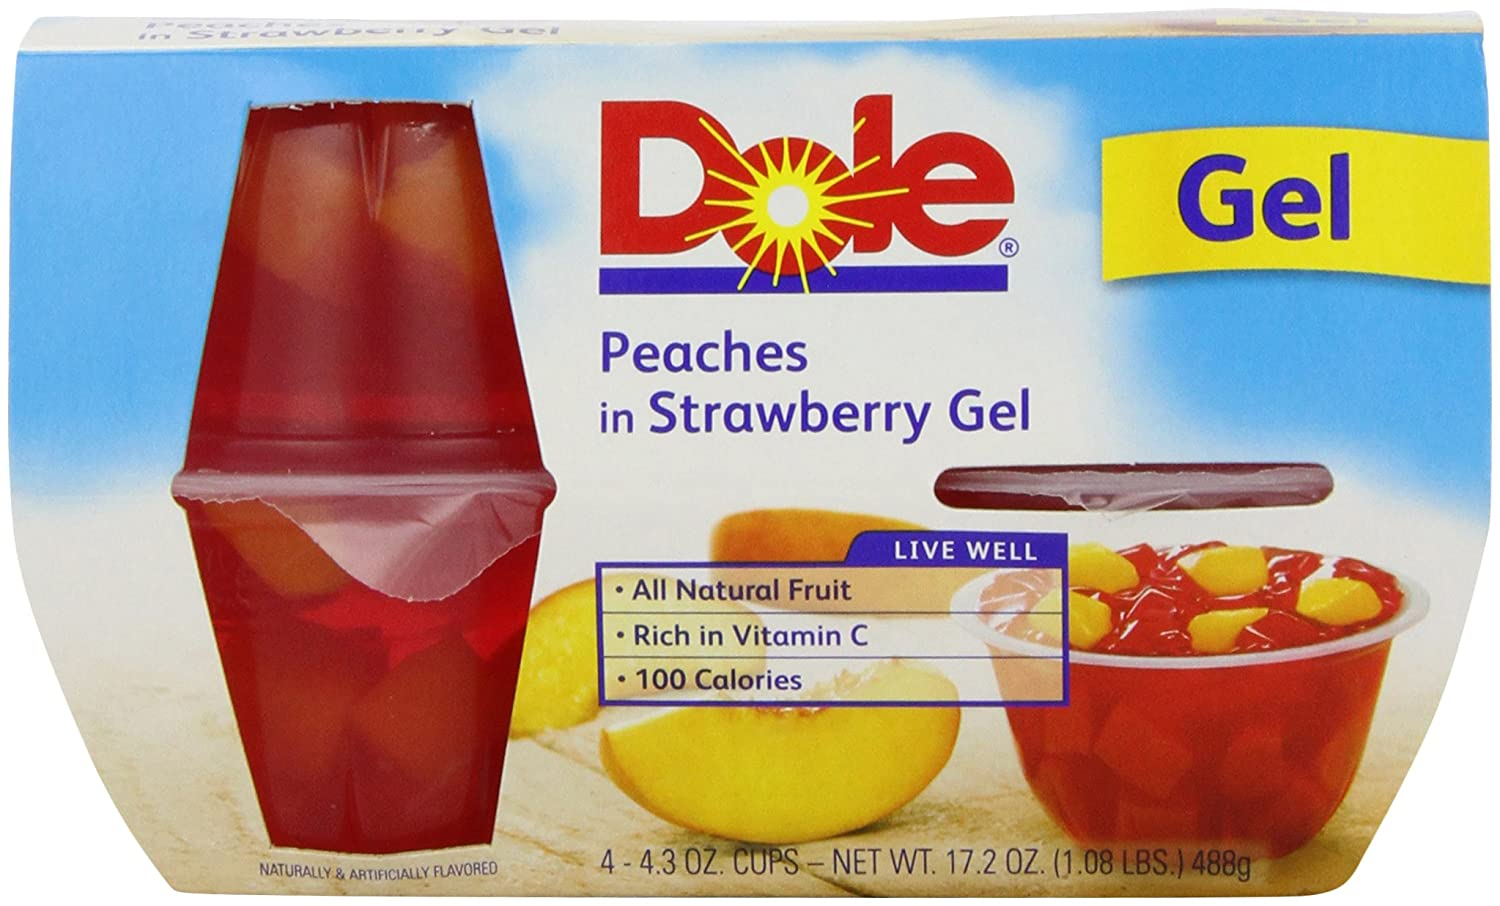 Dole, Peaches in Strawberry Gel, 16 Oz, Pack of 4